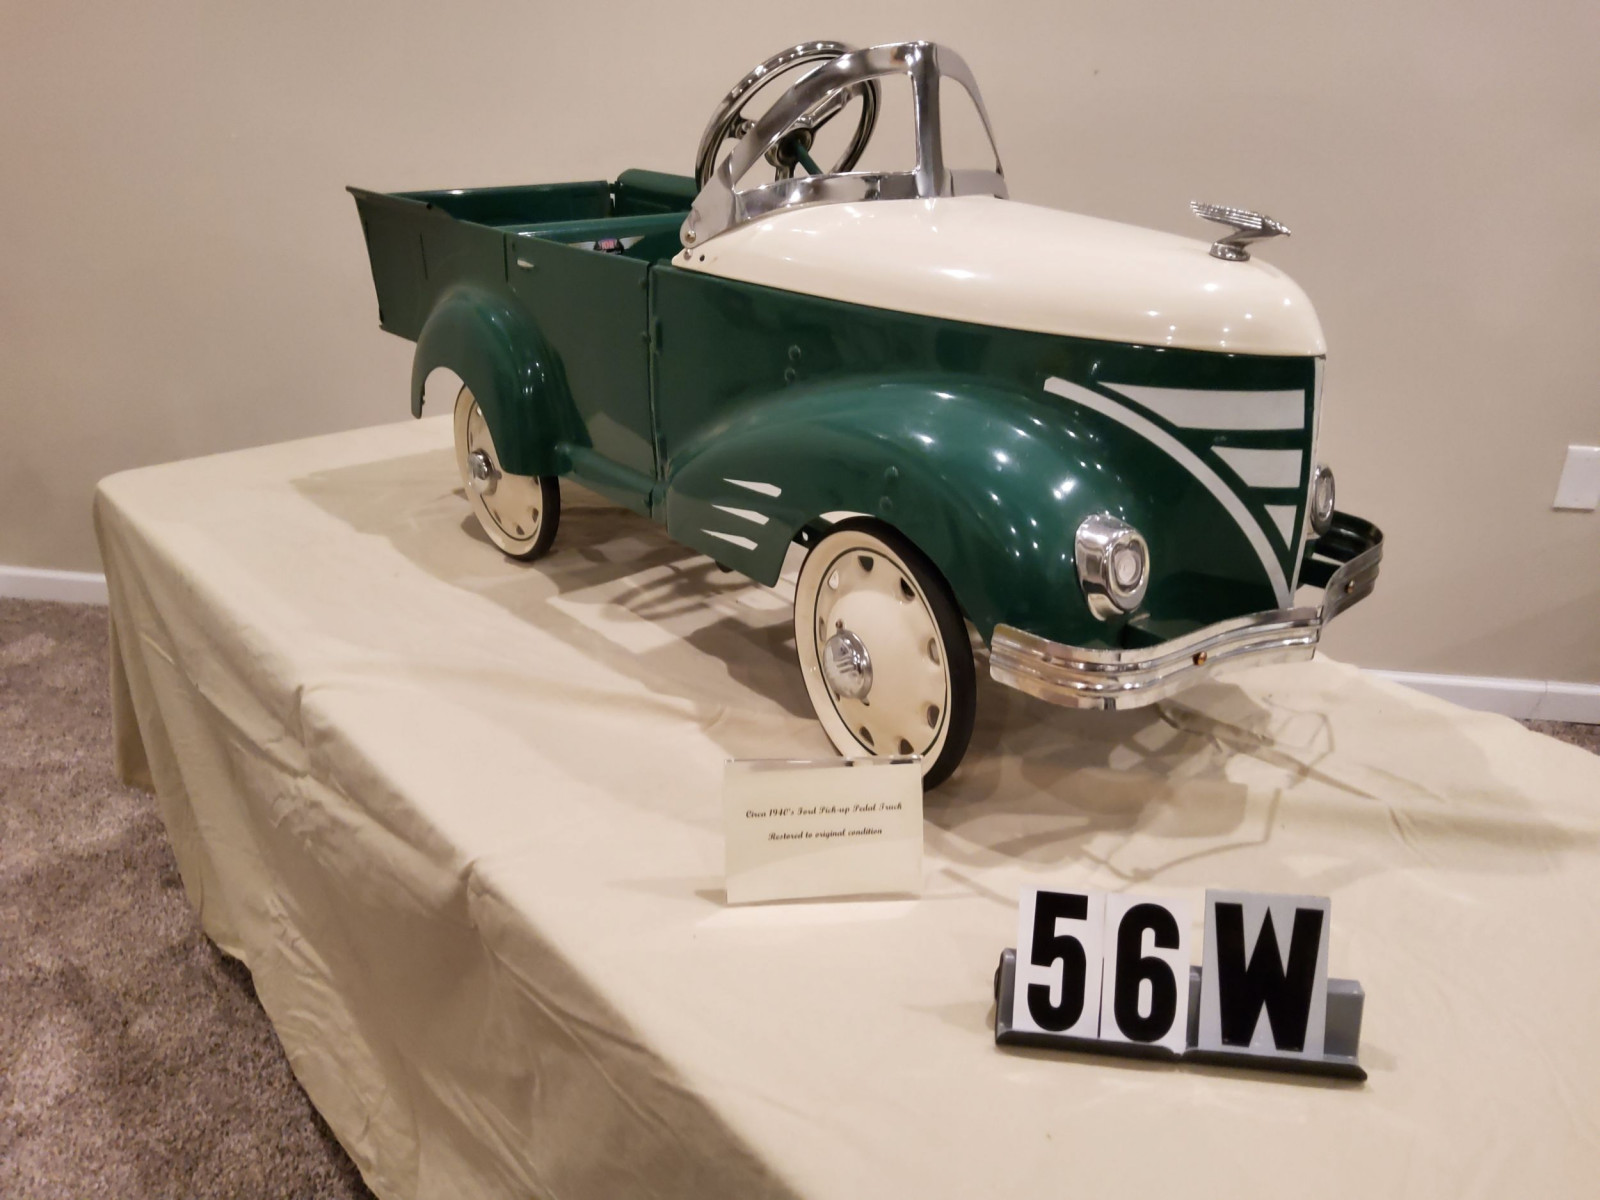 1940's Gendron Ford Pickup Pedal Car - Image 1